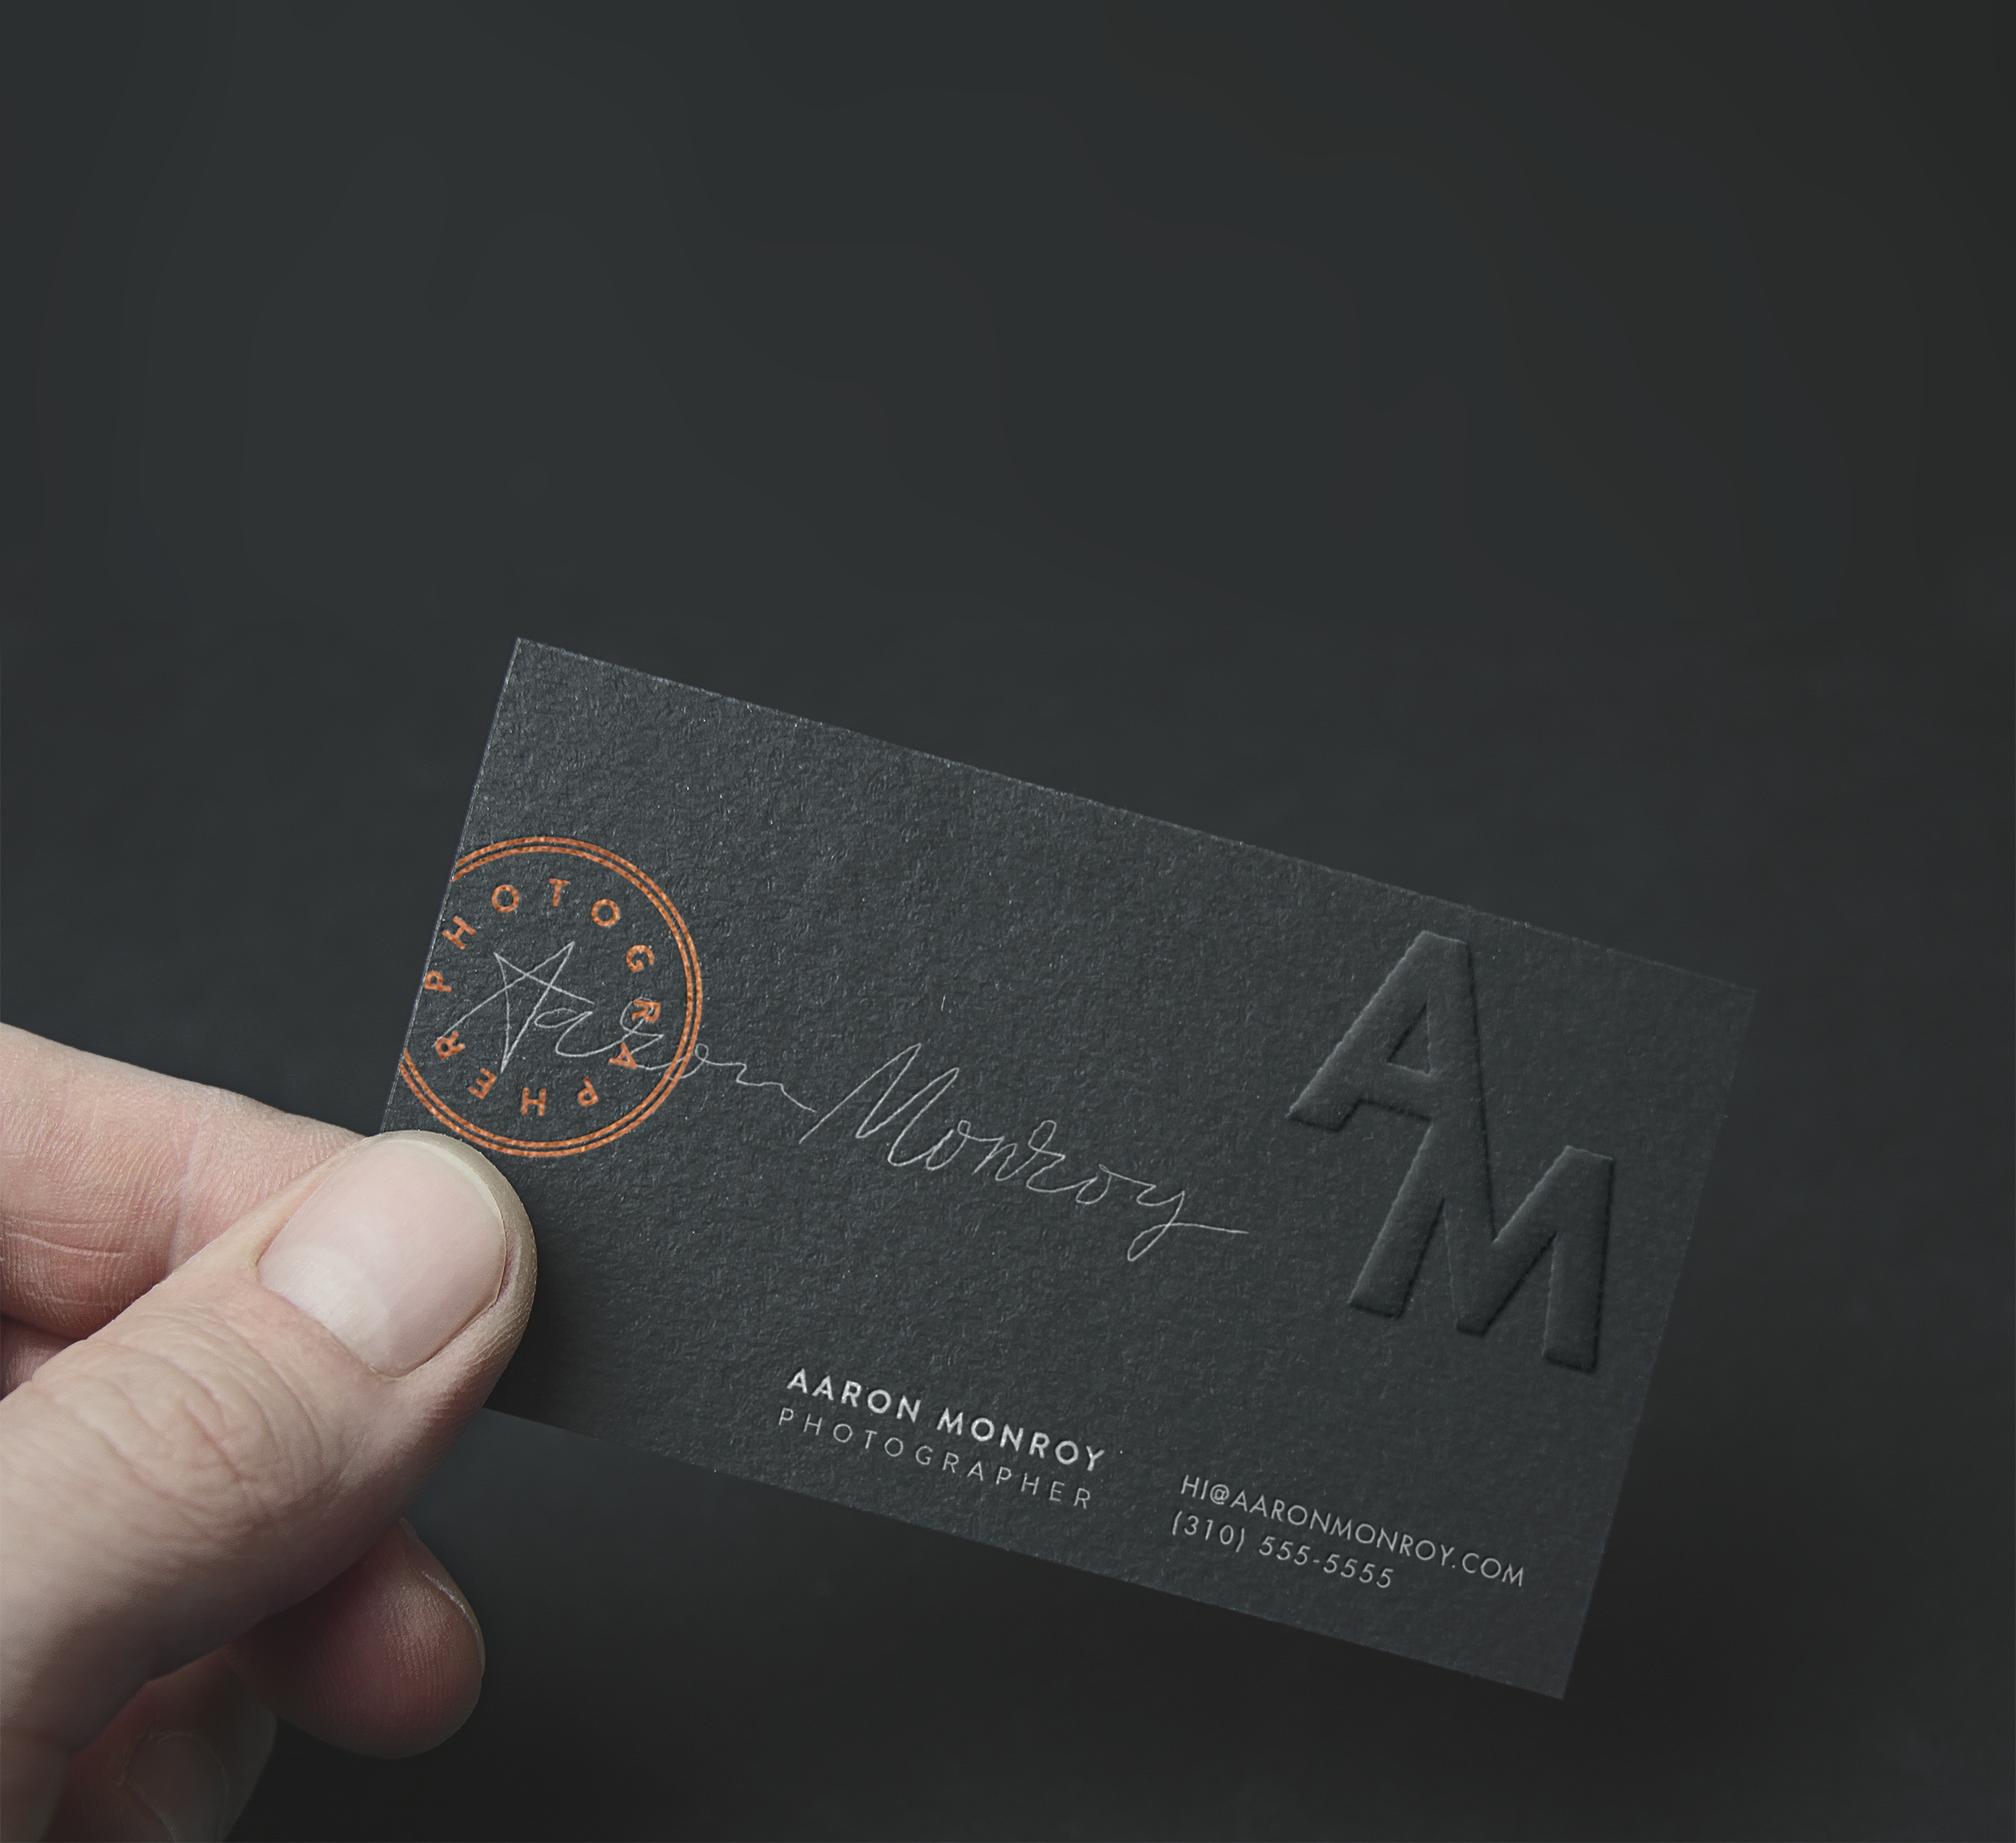 Aaron Monroy Photography Business Card Design by Emmy de Leon Jones ...